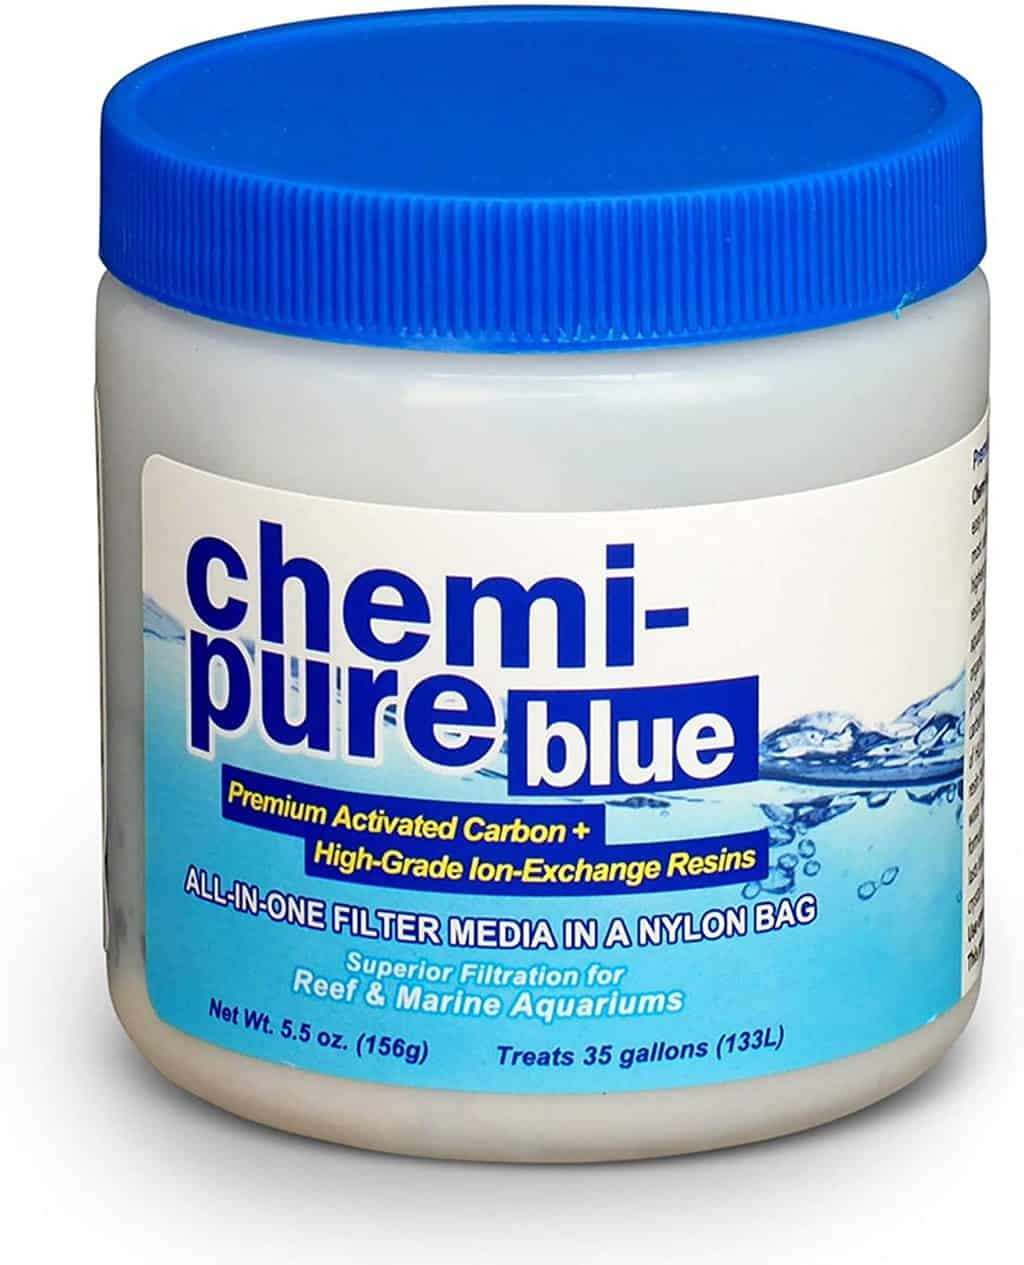 Chemi Pure Blue Review